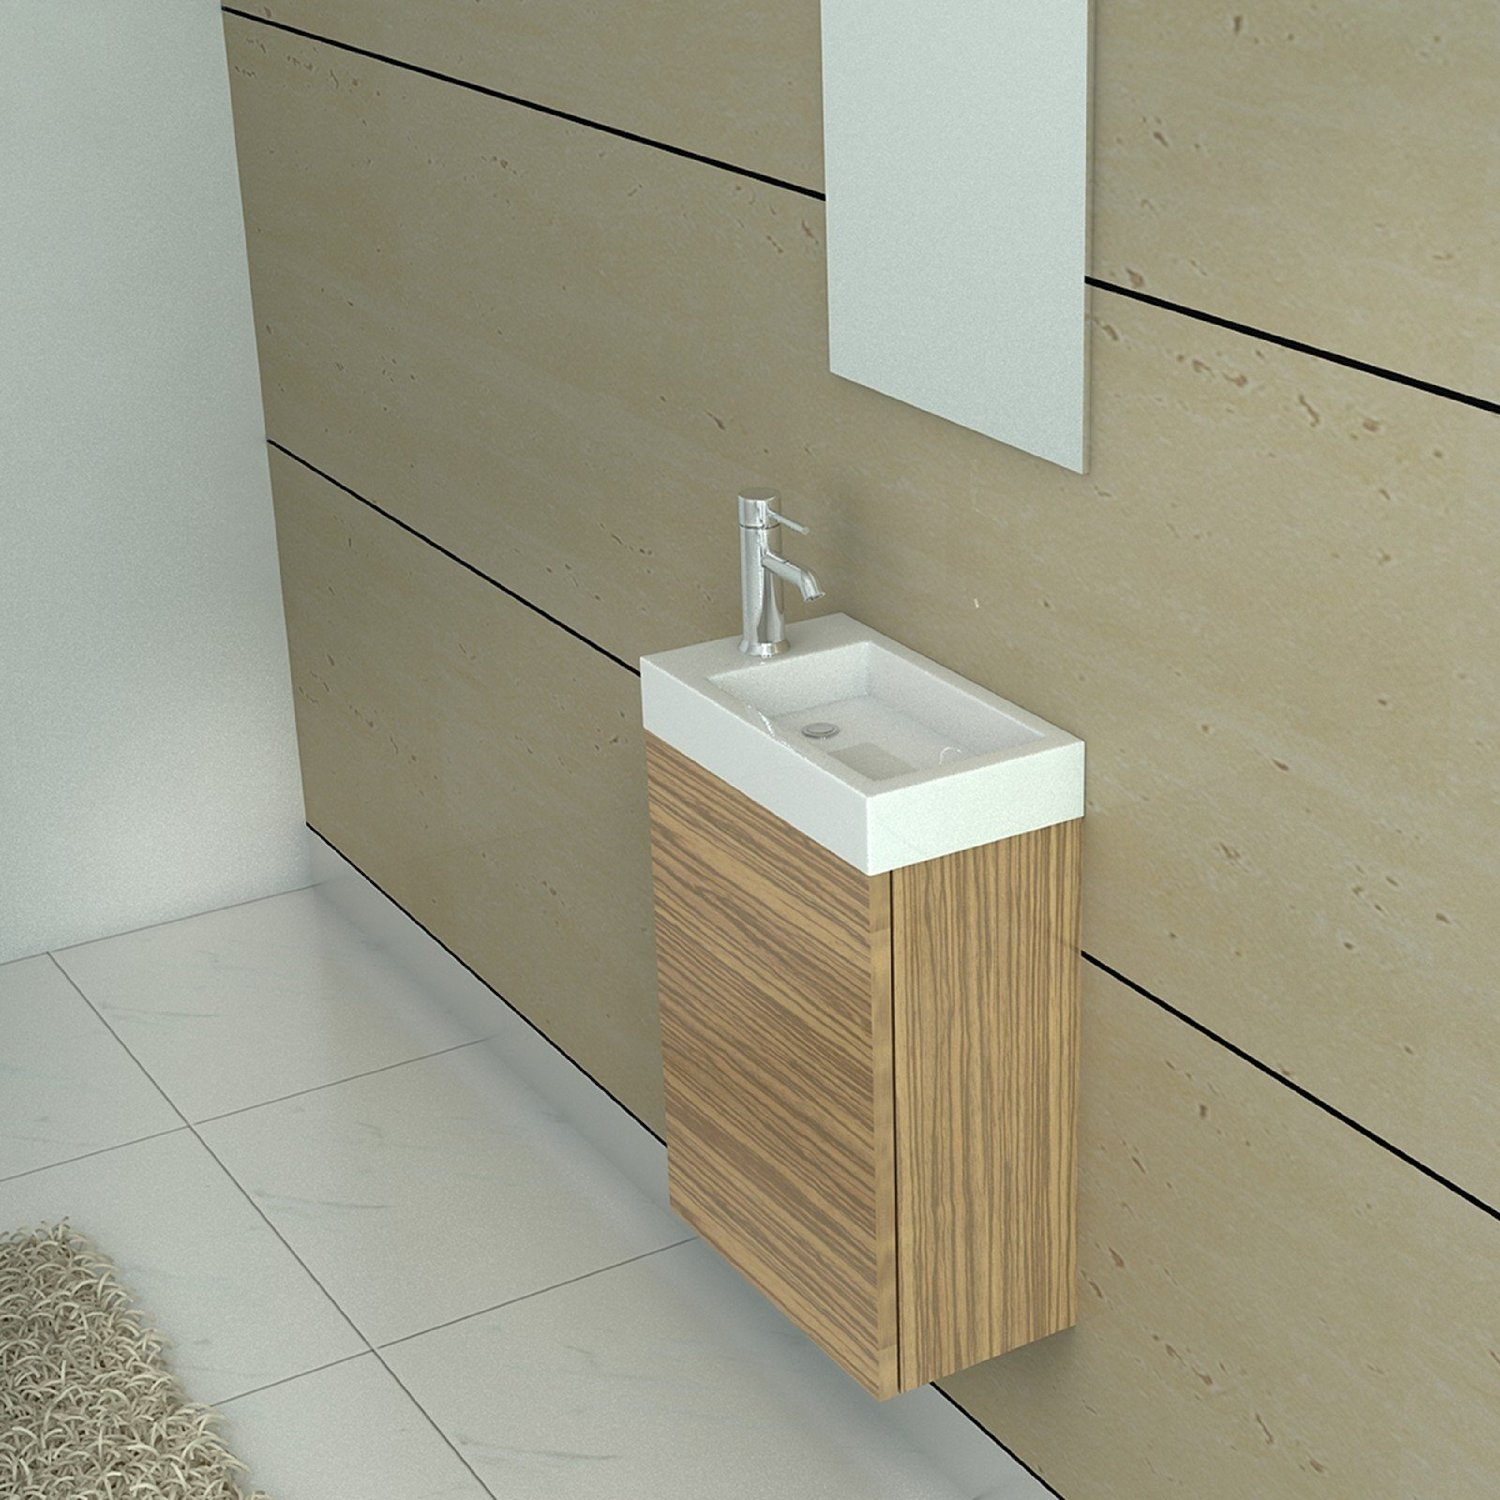 lavabo double vasque ikea petit lavabo de salle bain pictures to pin on pinterest - Meuble Lave Main Ikea